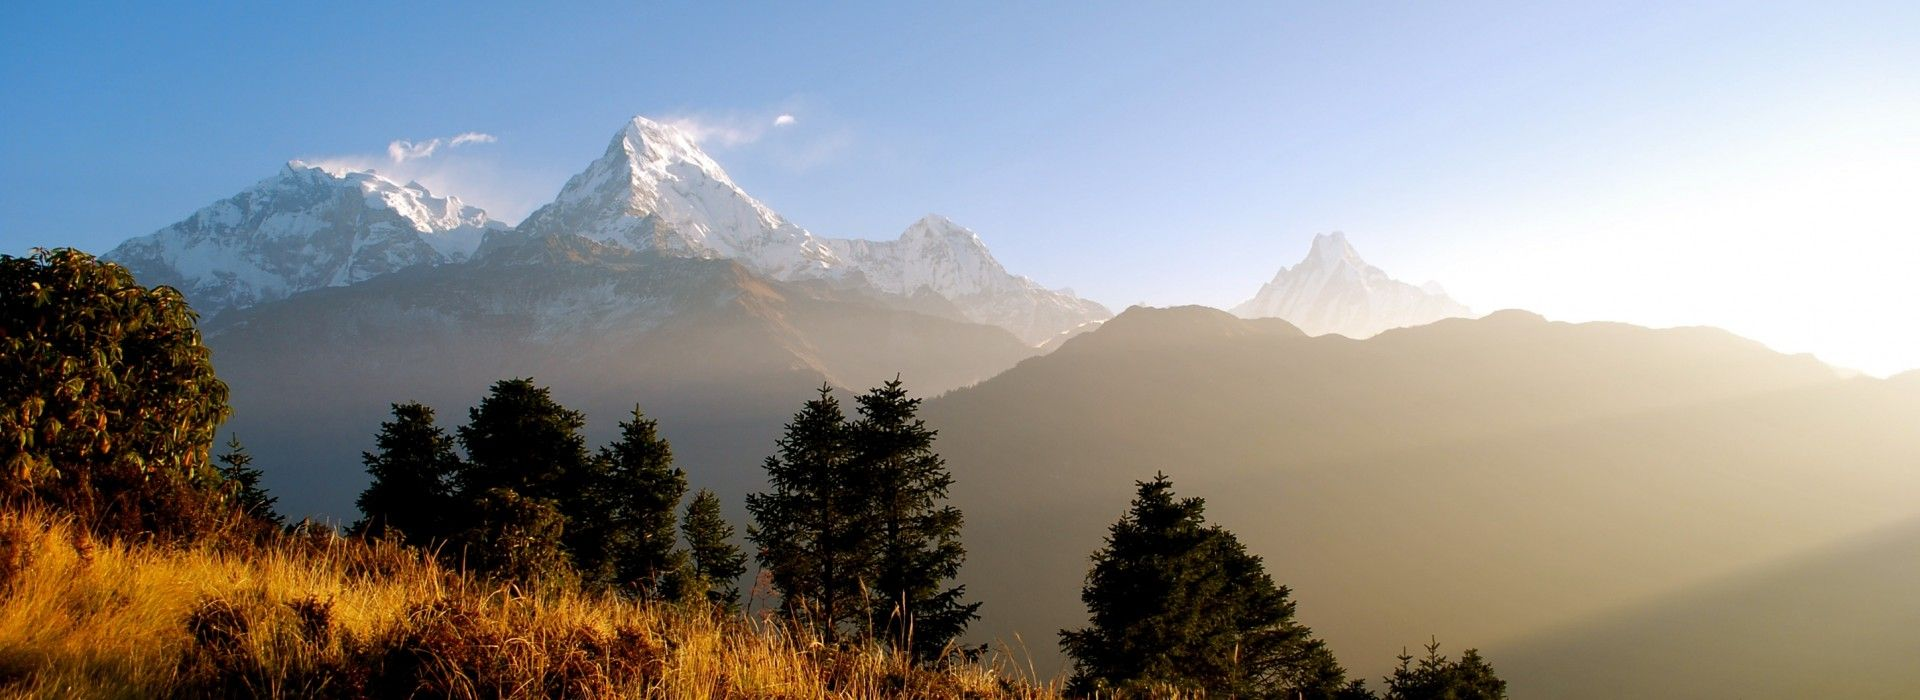 Cultural, religious and historic sites Tours in Annapurna Circuit trek